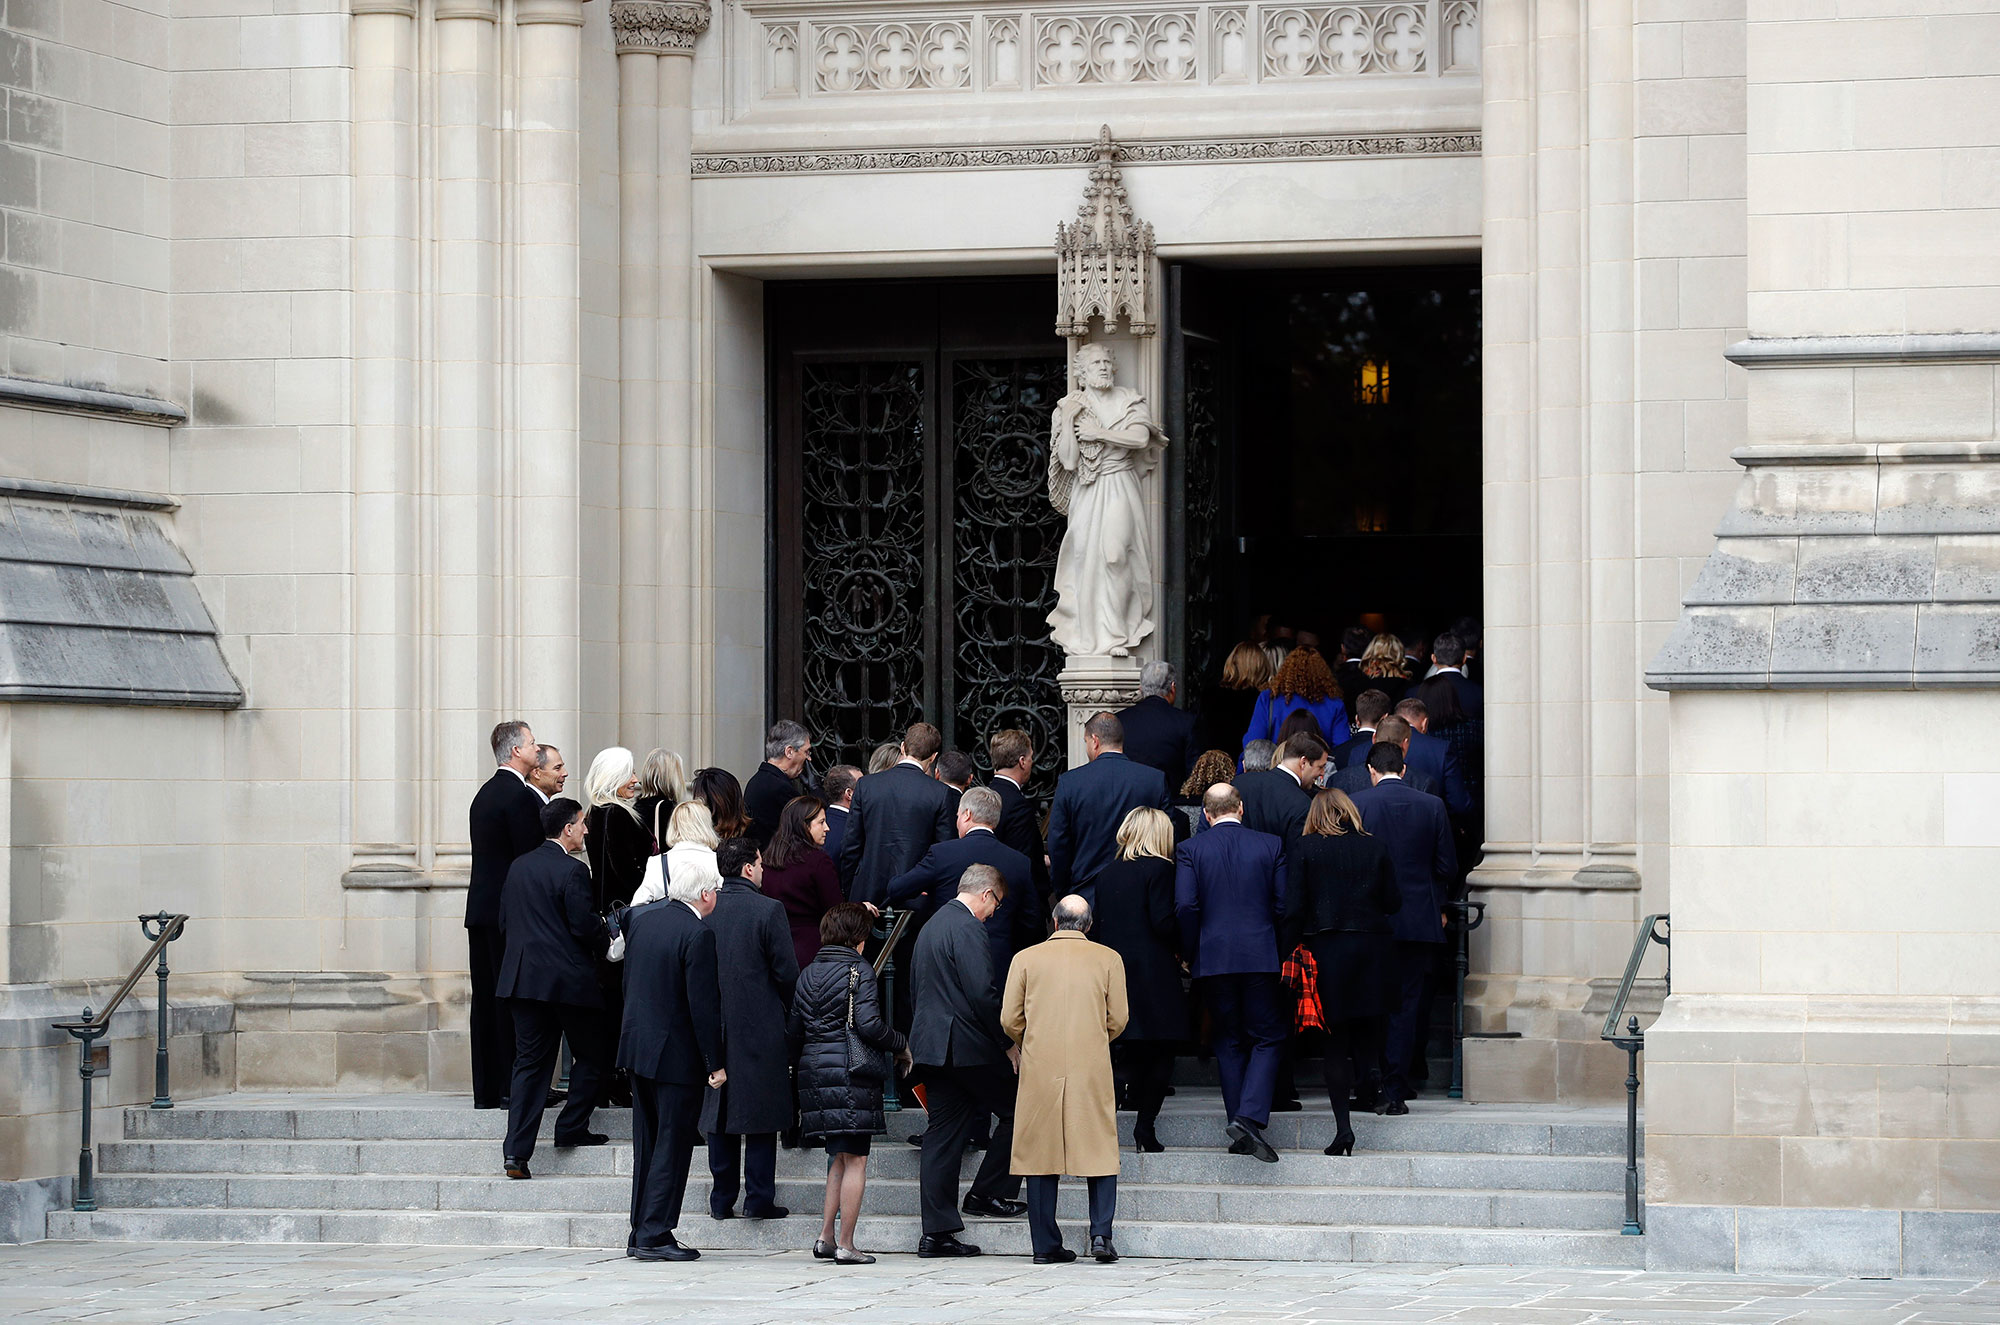 "<div class=""meta image-caption""><div class=""origin-logo origin-image none""><span>none</span></div><span class=""caption-text"">Mourners file into the Washington National Cathedral before a State Funeral for former President George H.W. Bush in Washington, Wednesday, Dec. 5, 2018. (Patrick Semansky/AP Photo)</span></div>"